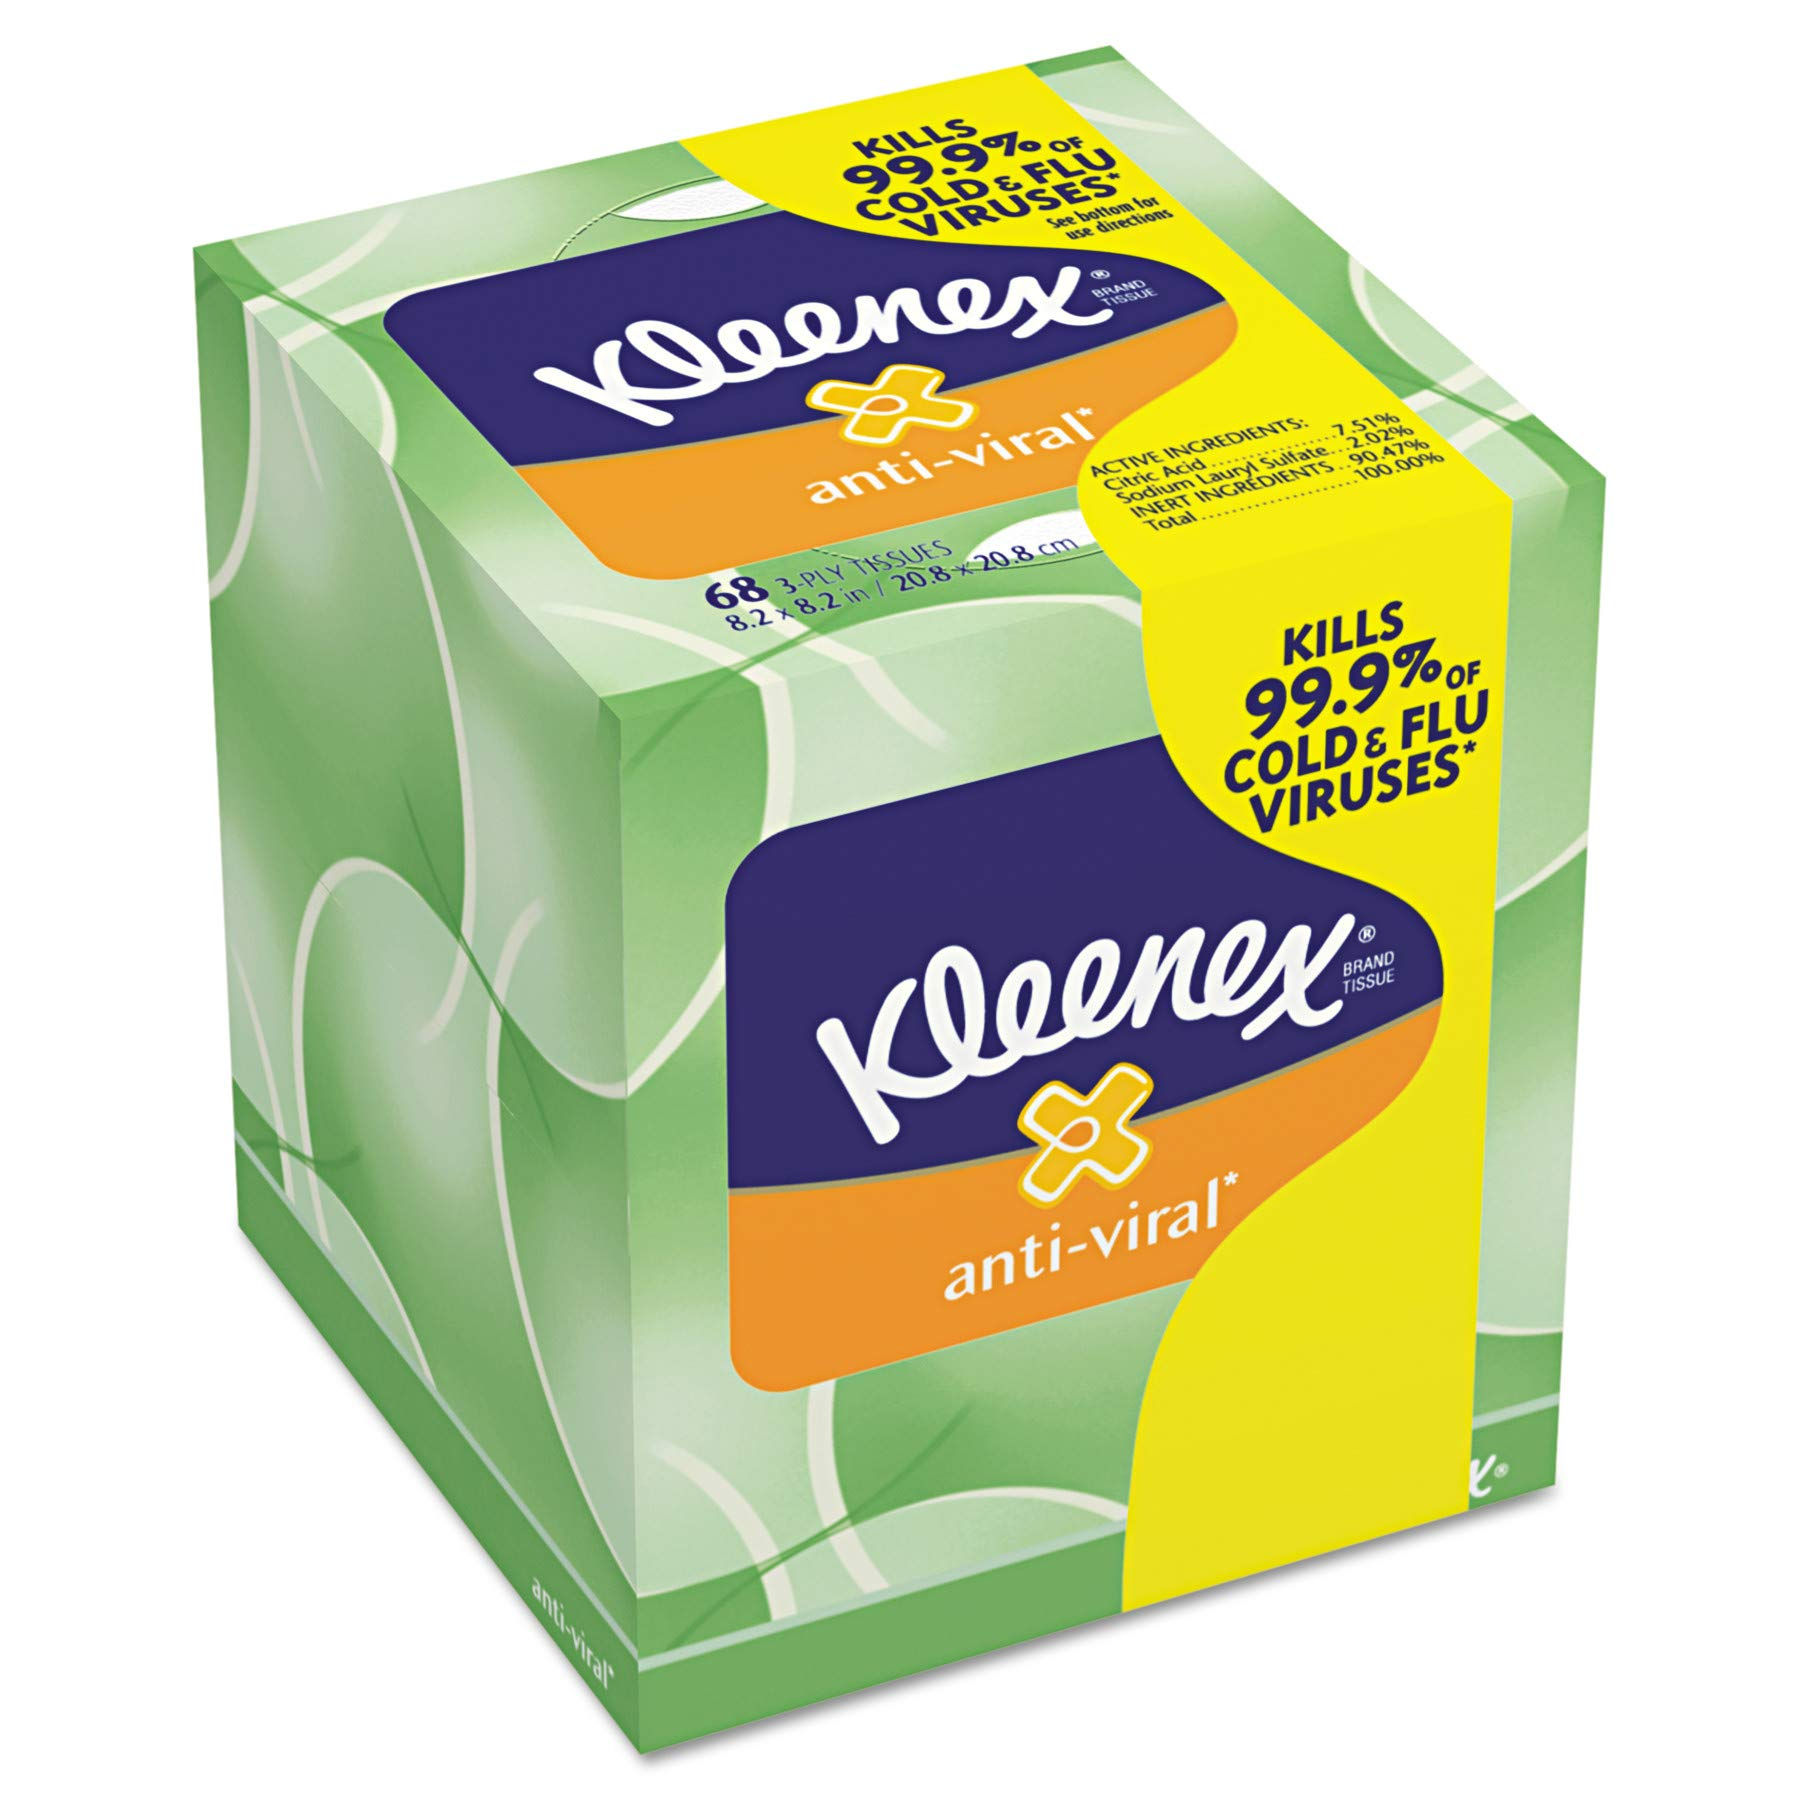 Kleenex 25836CT Anti-Viral Facial Tissue, 3-Ply, 68 Sheets per Box (Case of 27 Boxes)